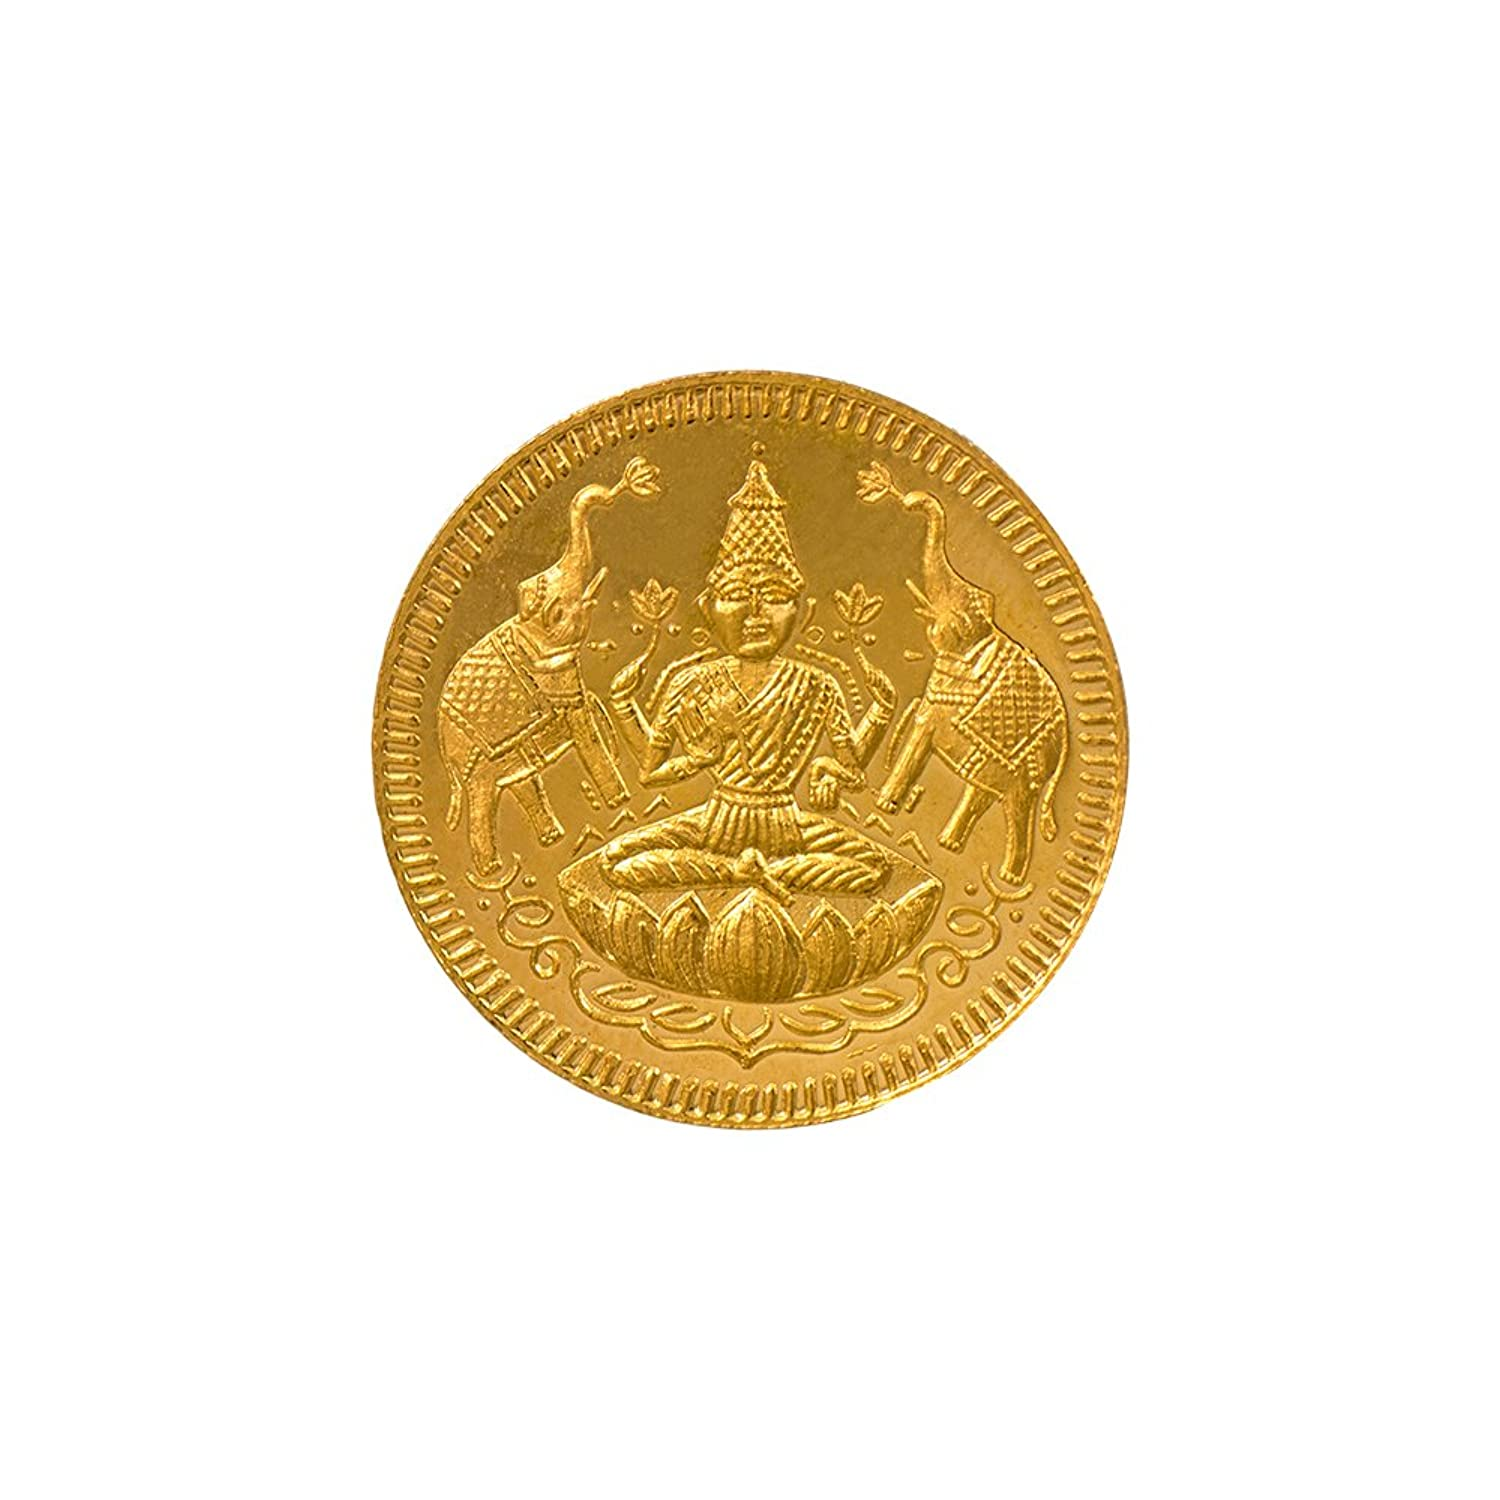 22k (916) 8 gm BIS Hallmarked Yellow Gold Precious Coin